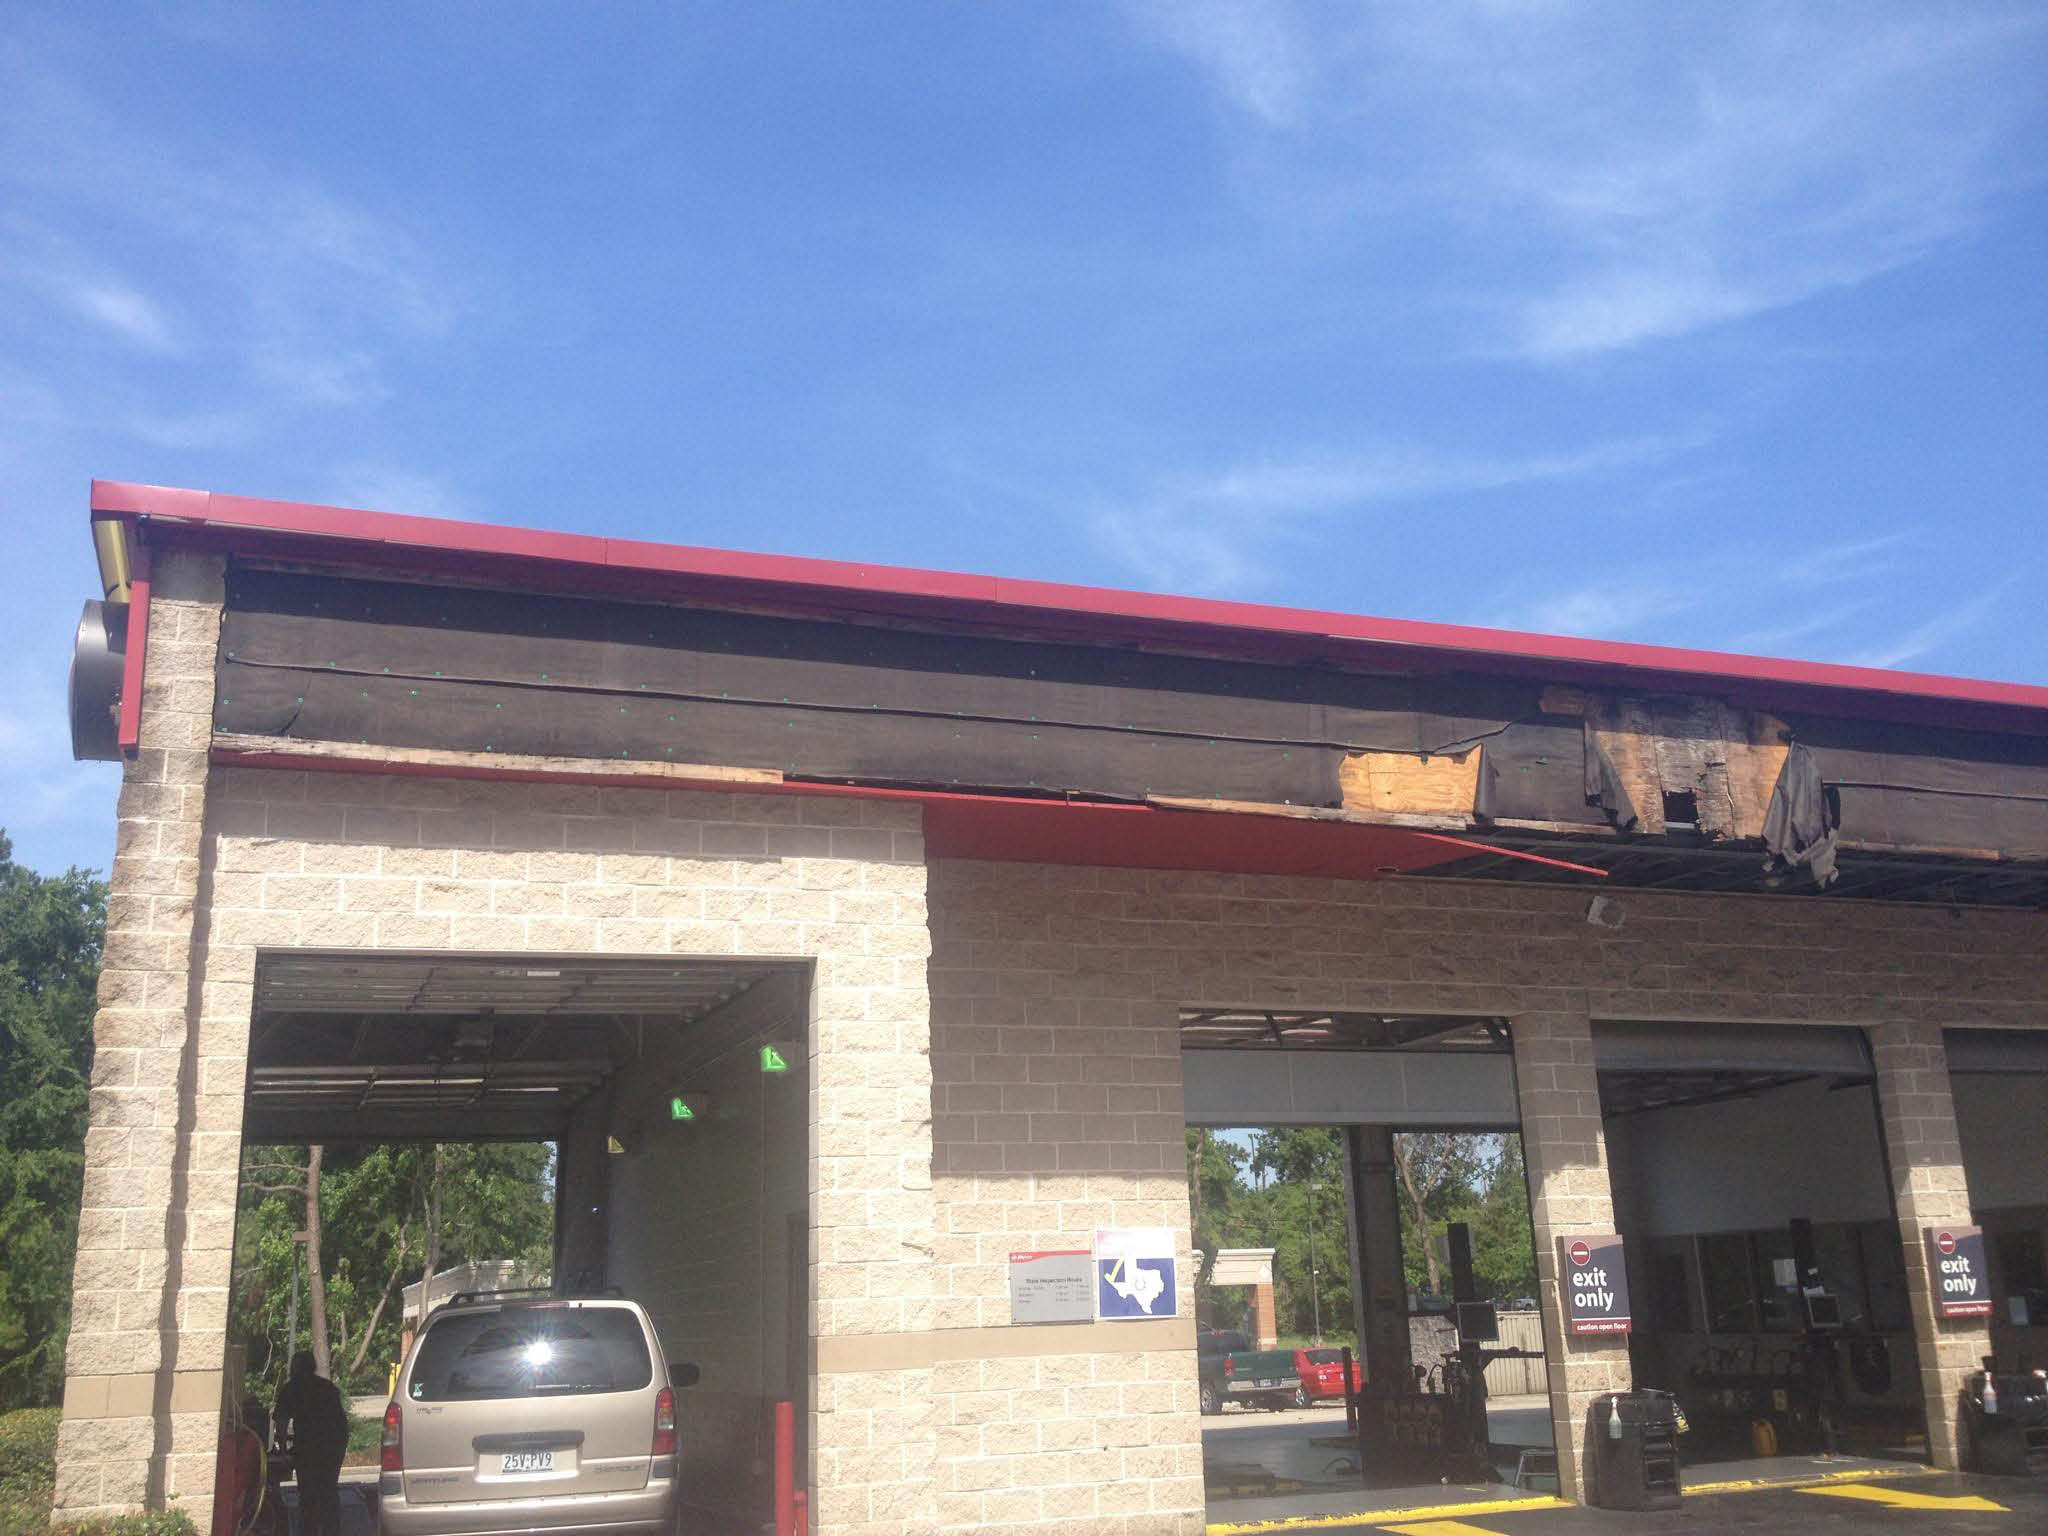 Visit your local Jiffy Lube on West Lake Houston Parkway in Kingwood, TX auto services car services fix my car